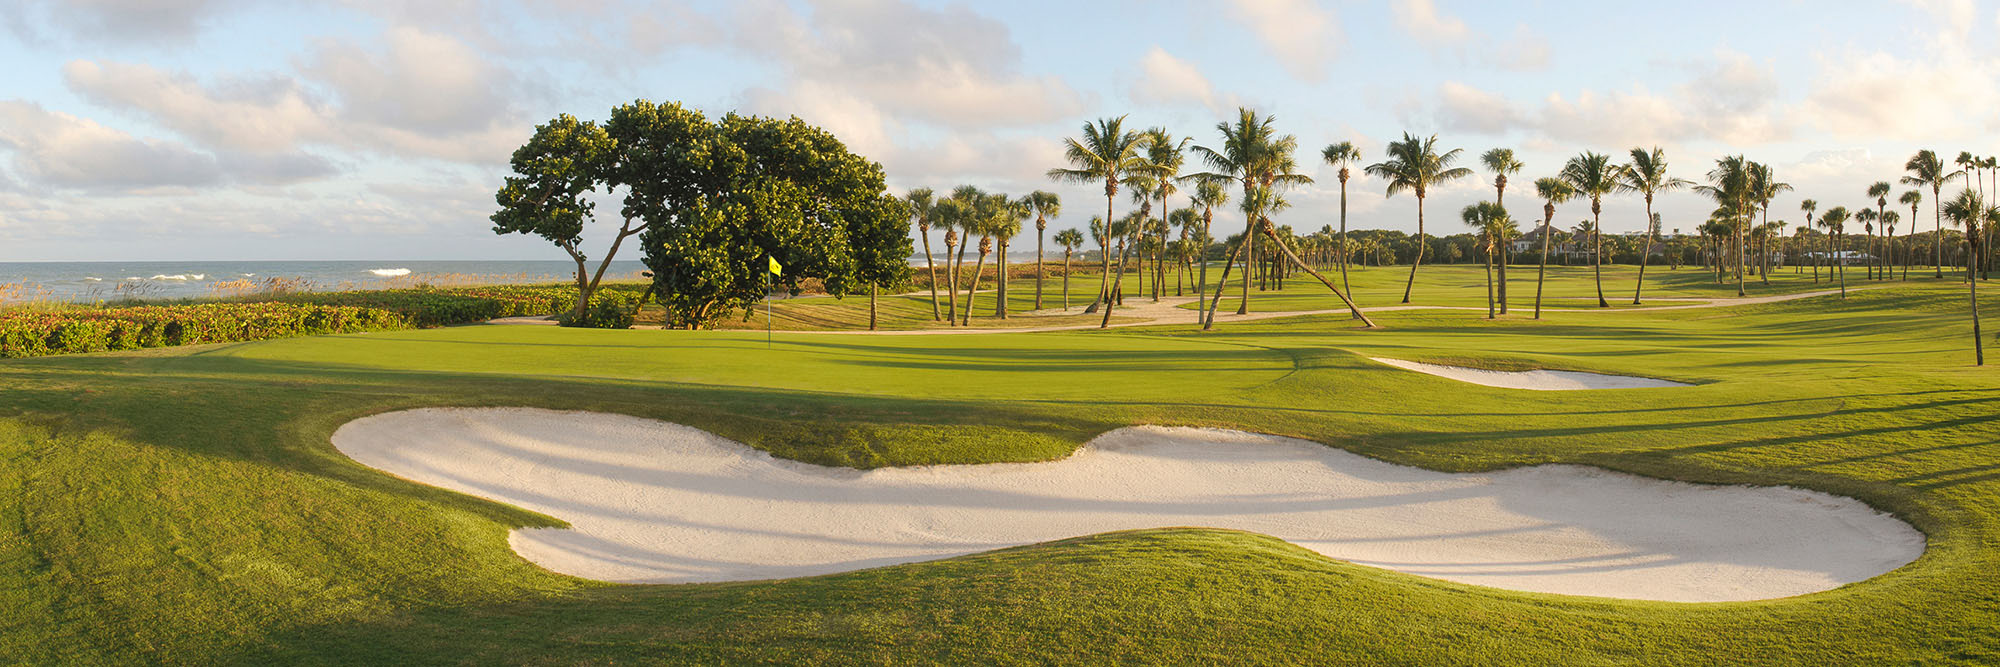 Golf Course Image - Riomar No. 6